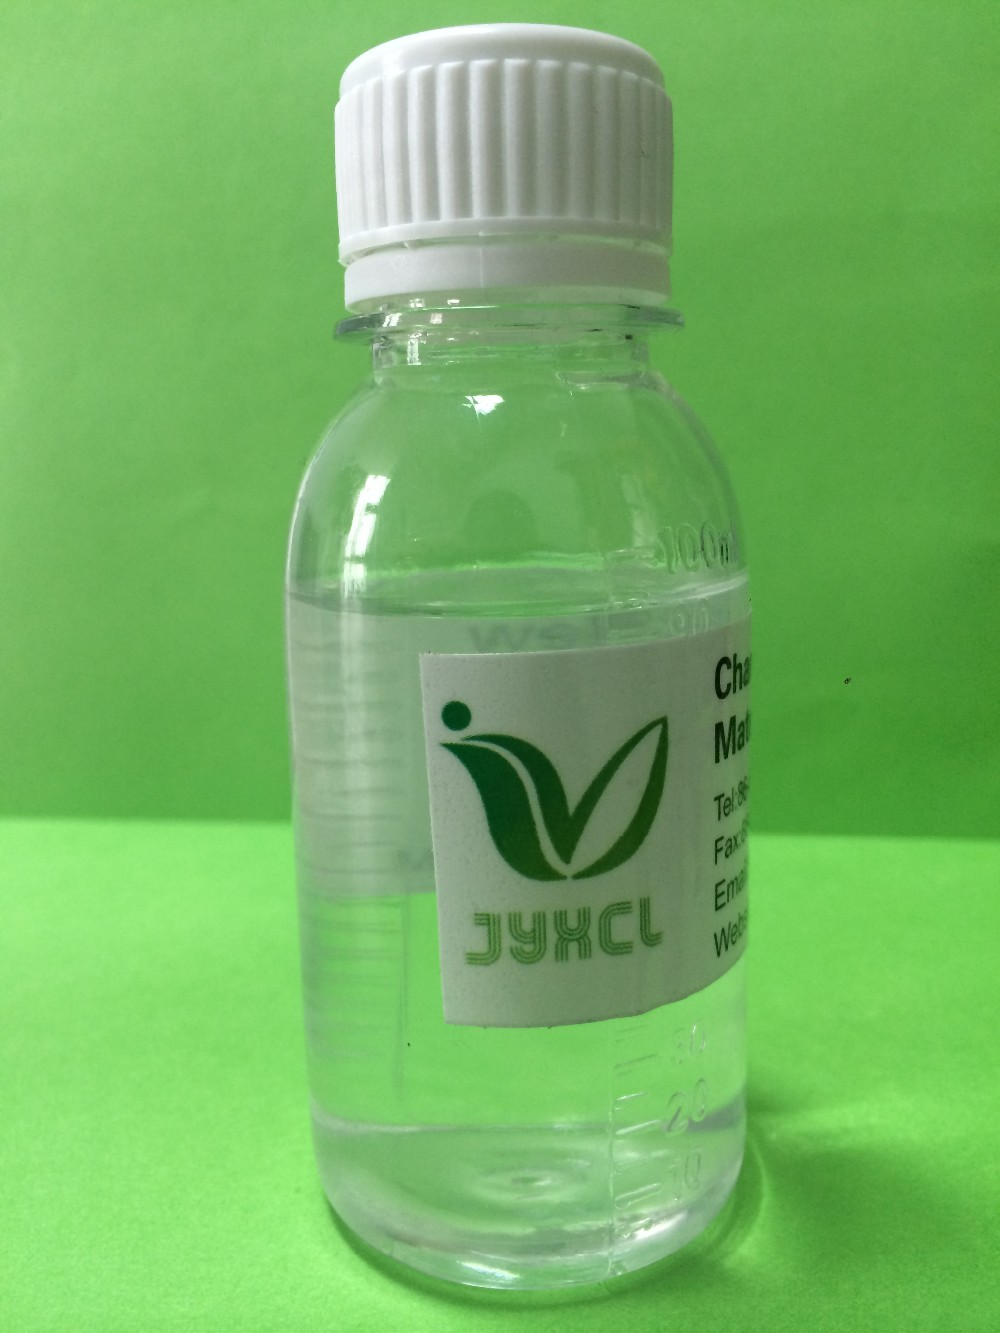 JY-200 silicone release agent for lable equivalent as DC SL200